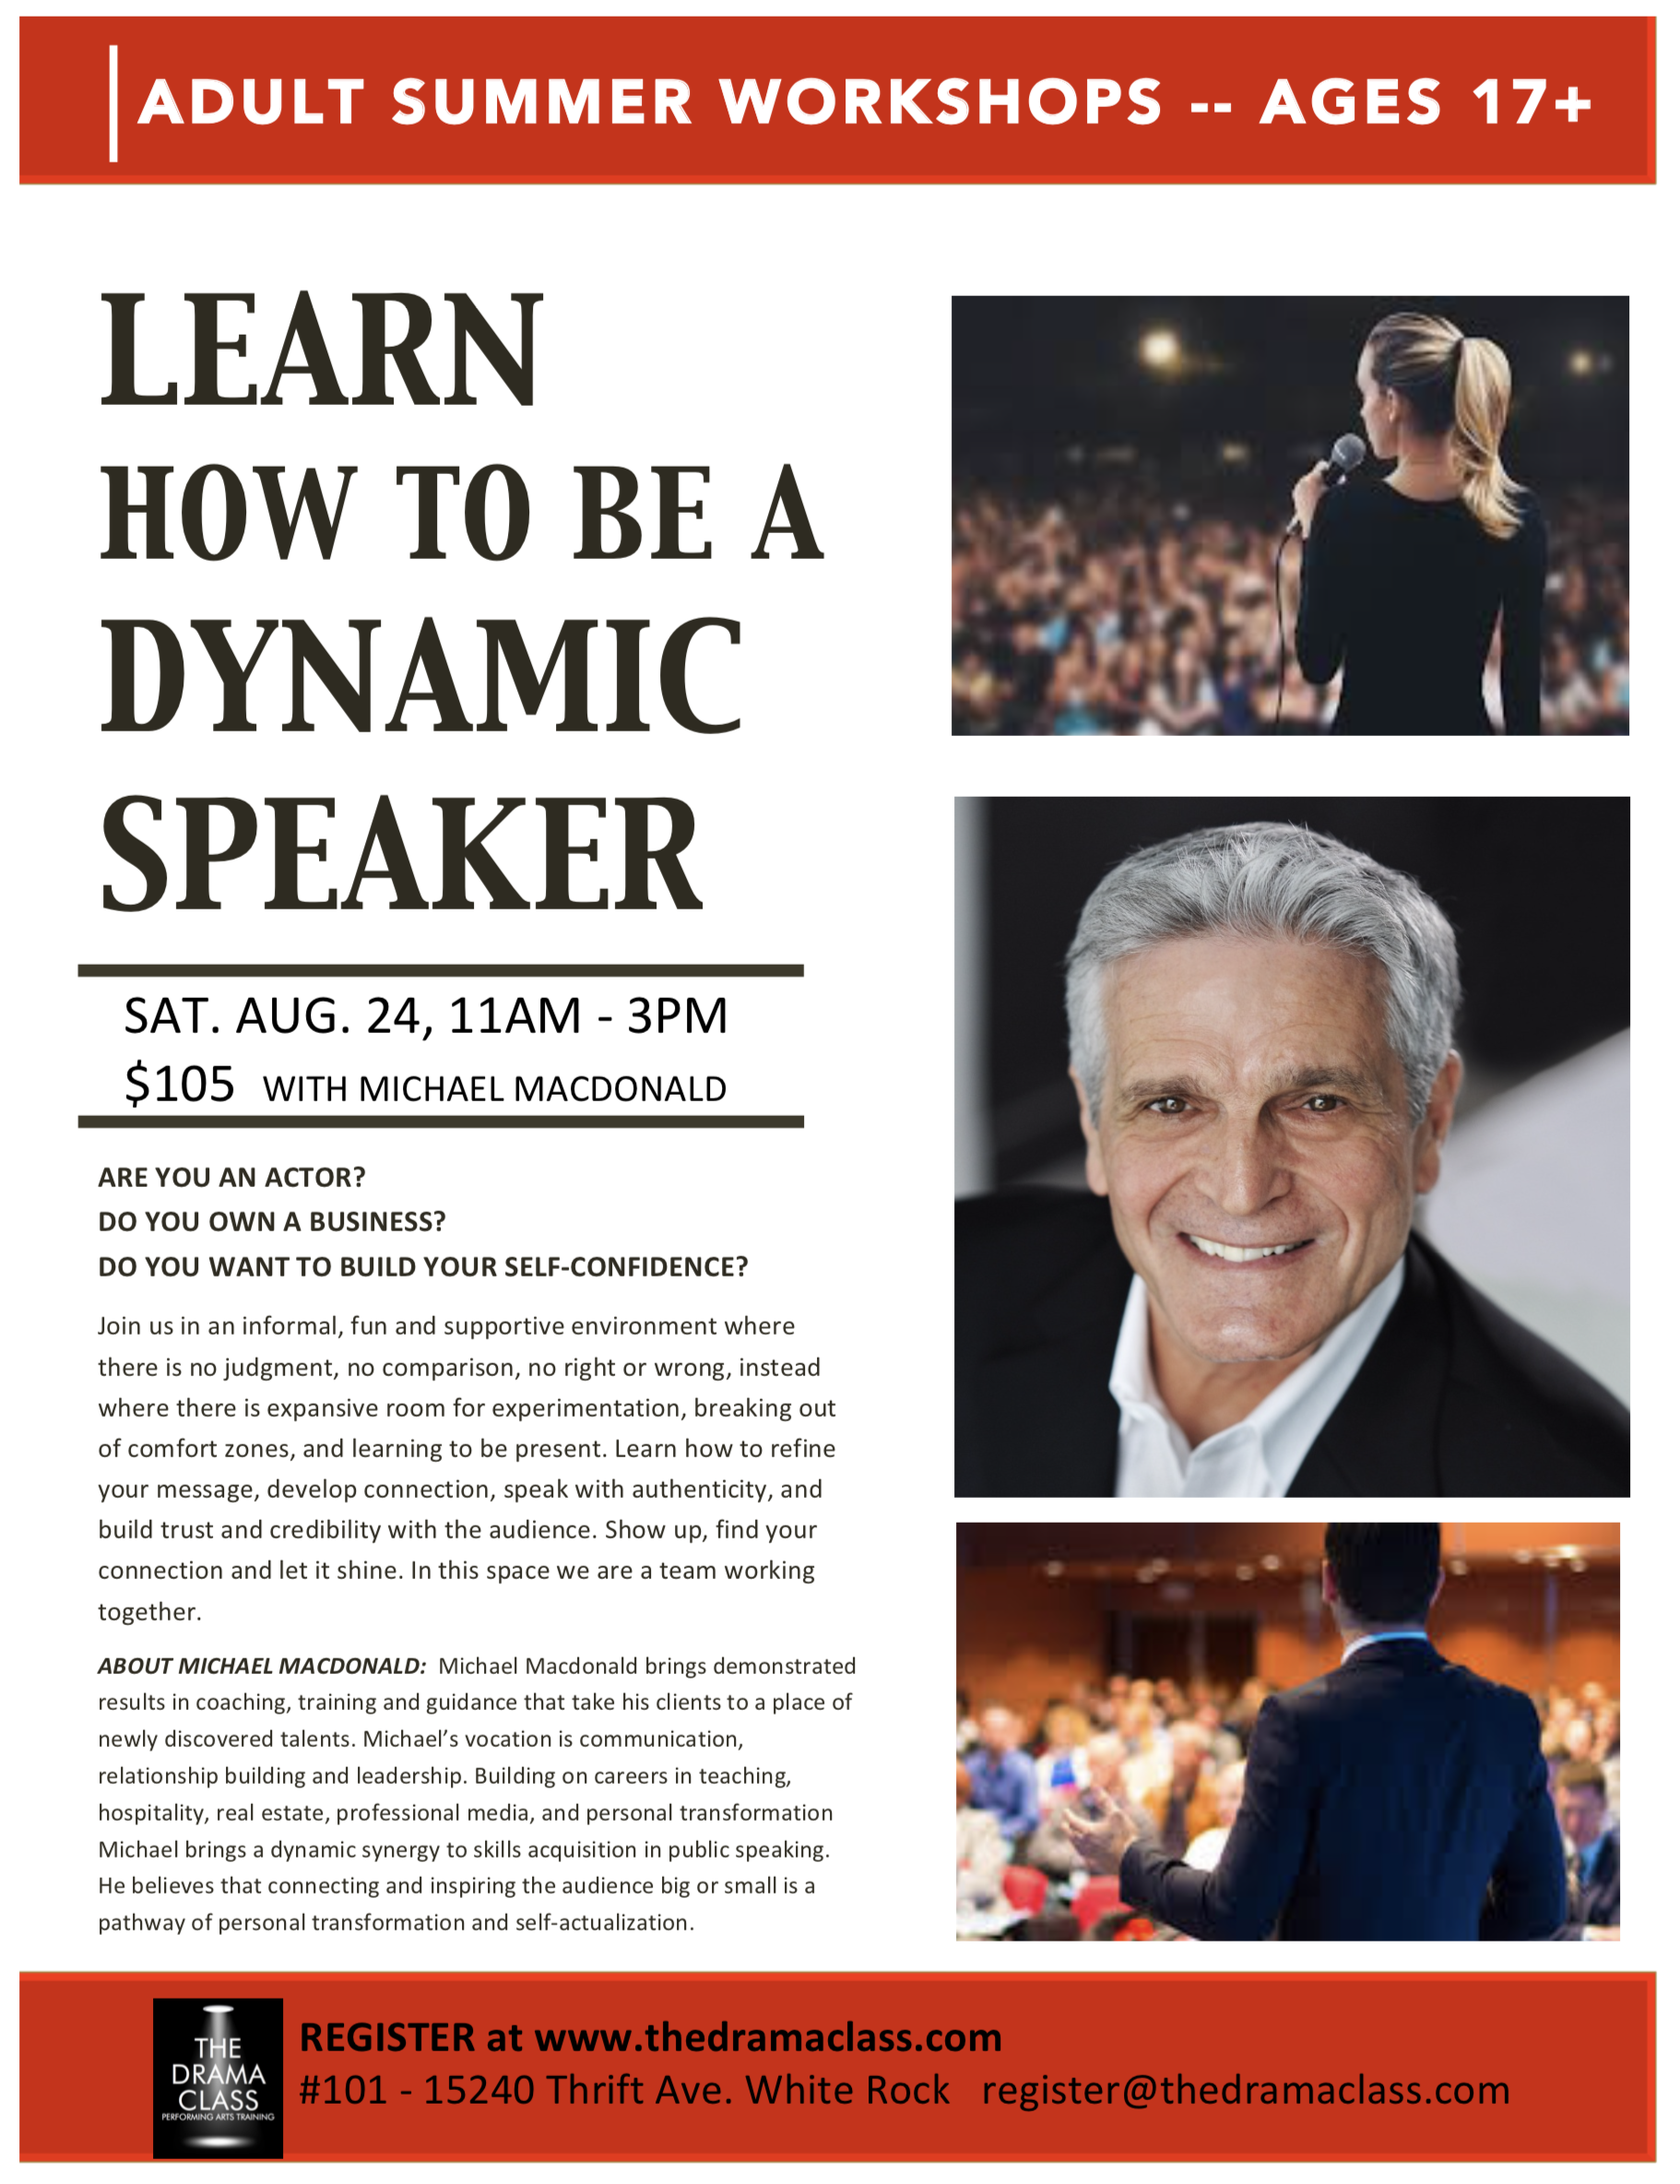 Learn How to Be a Dynamic Speaker with Michael Macdonald